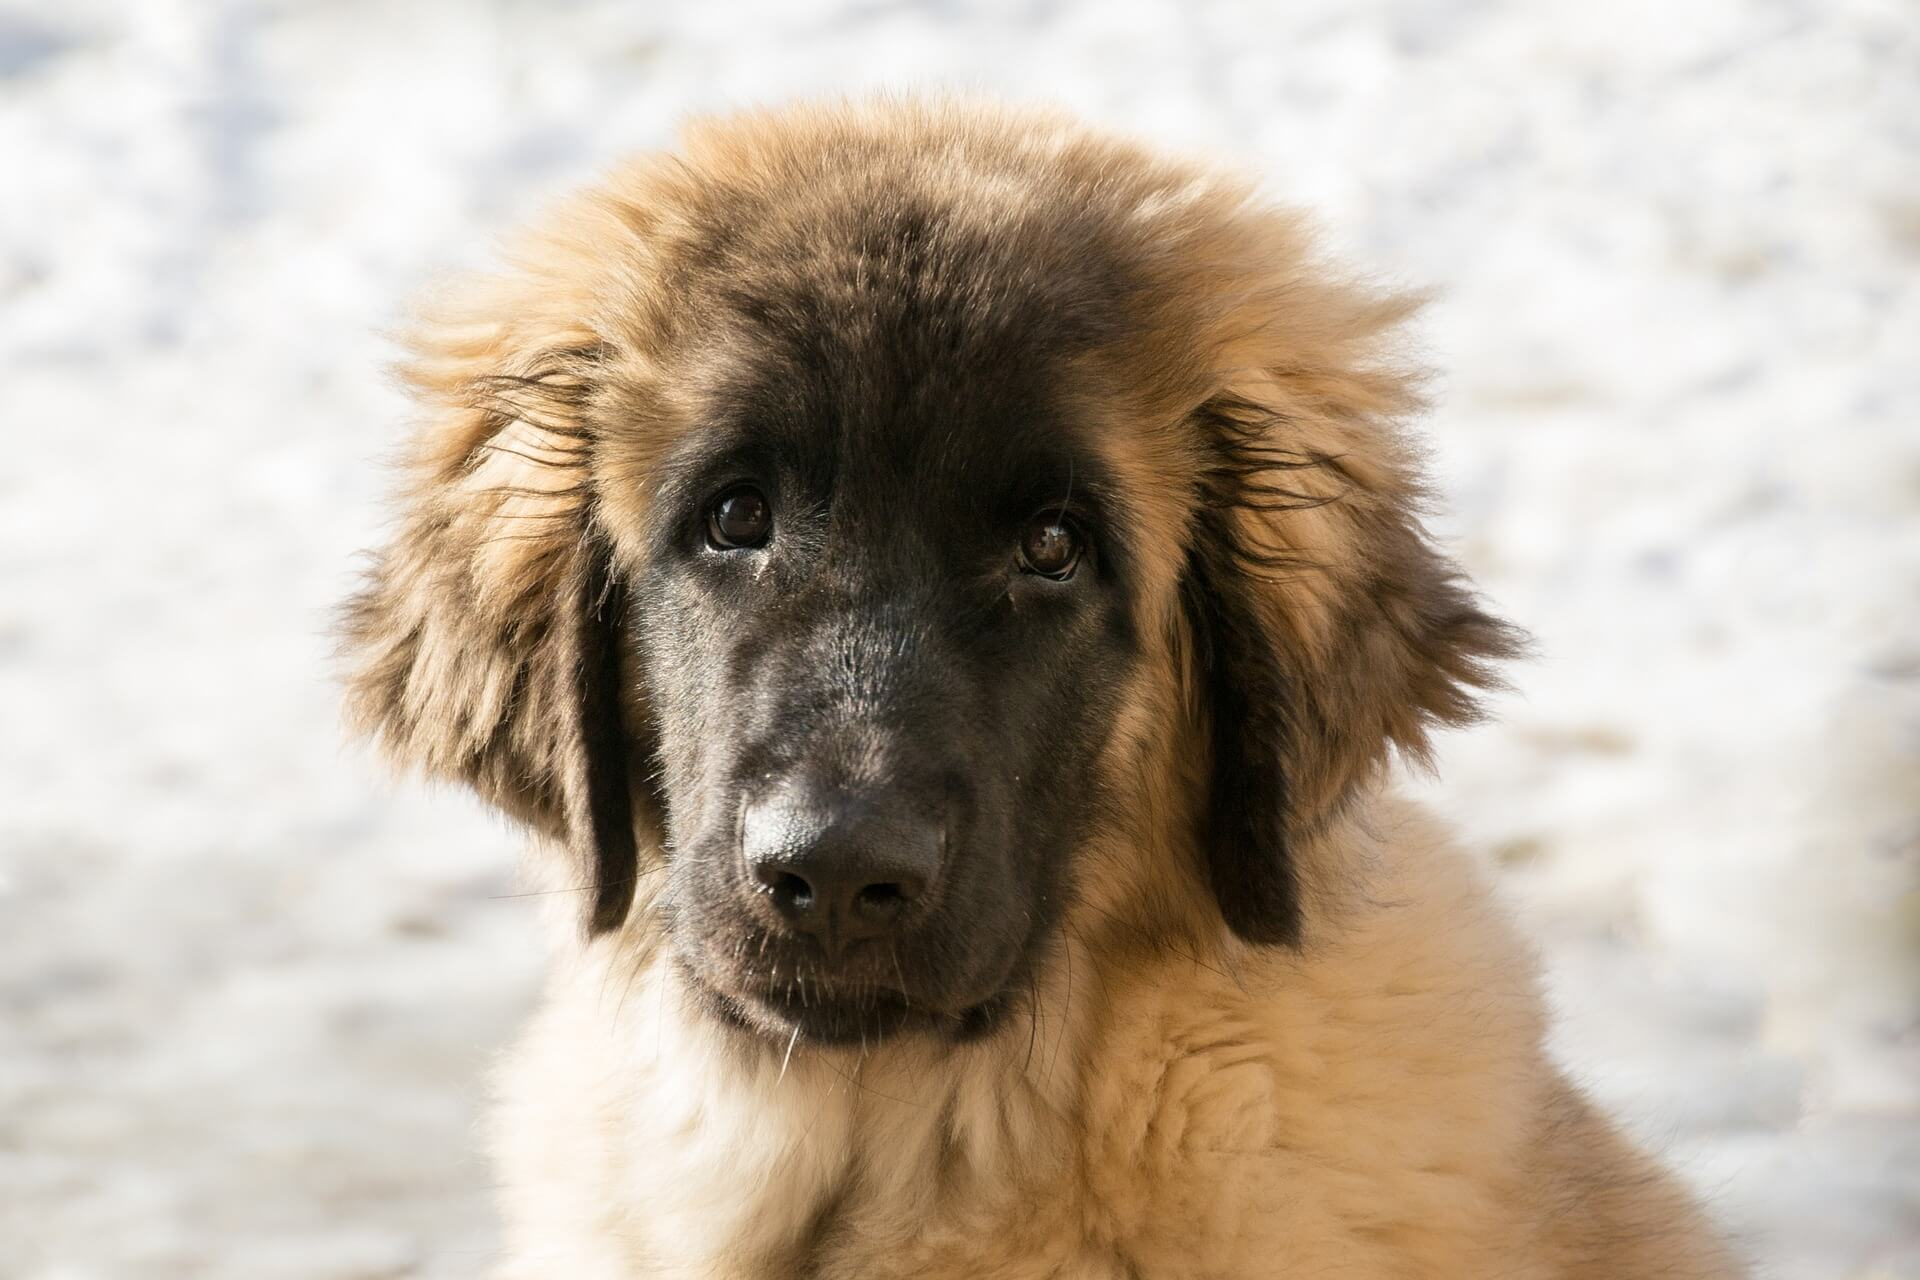 leonberger dog looking